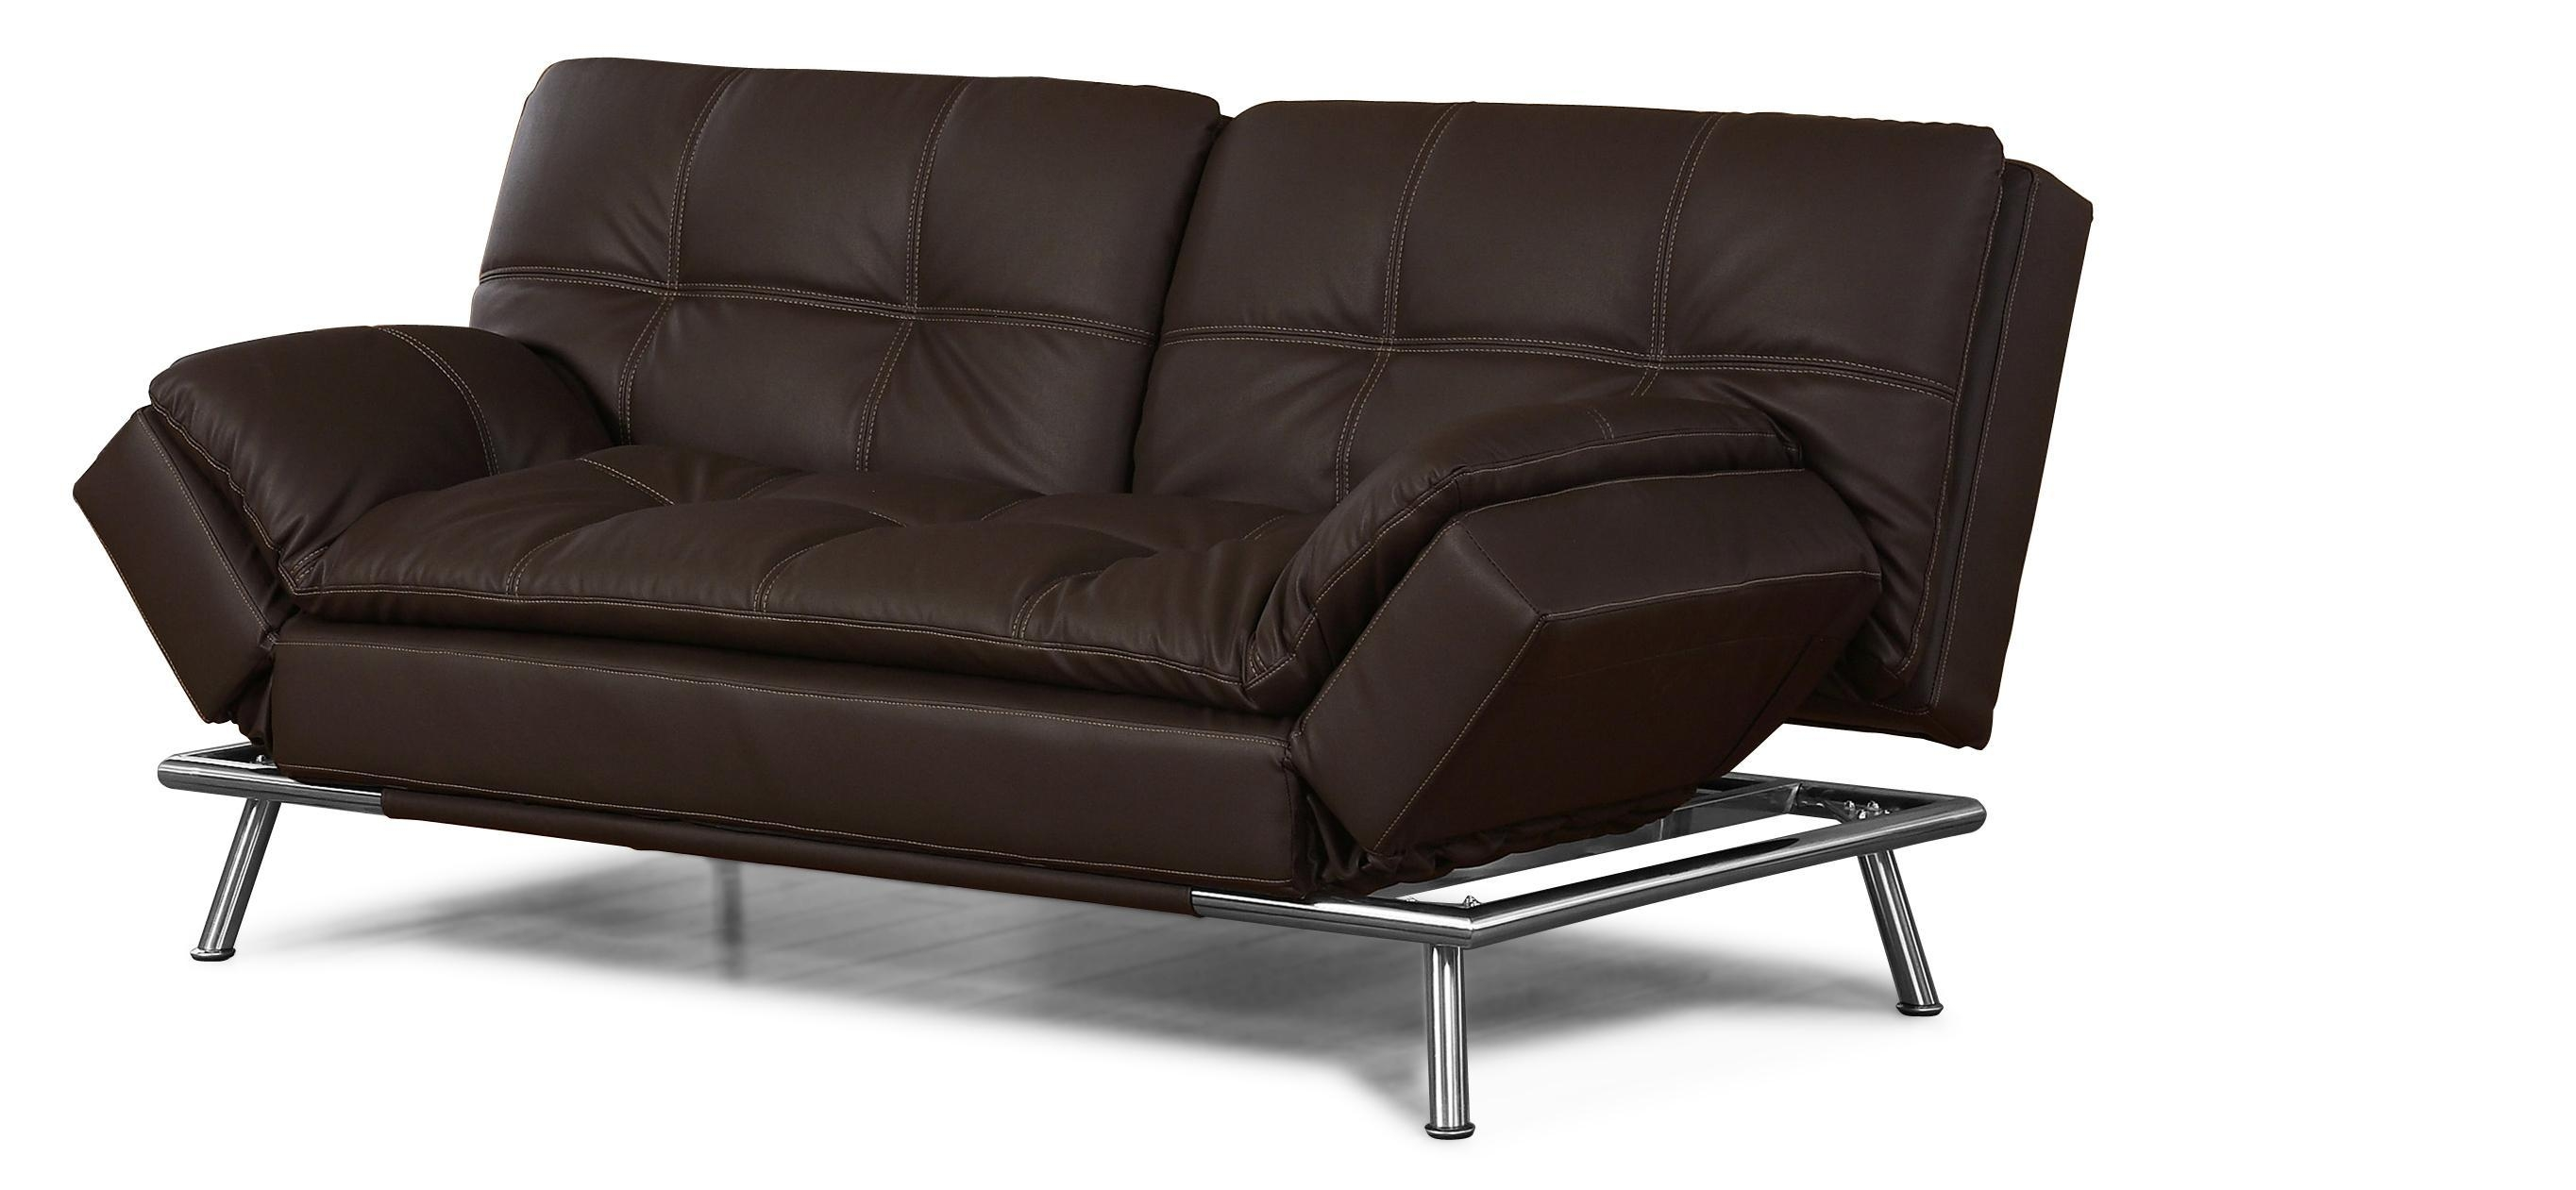 Sofas Center : Costco Futon Beds Roselawnlutheran Lifestyle Pertaining To Euro Loungers (Image 16 of 20)